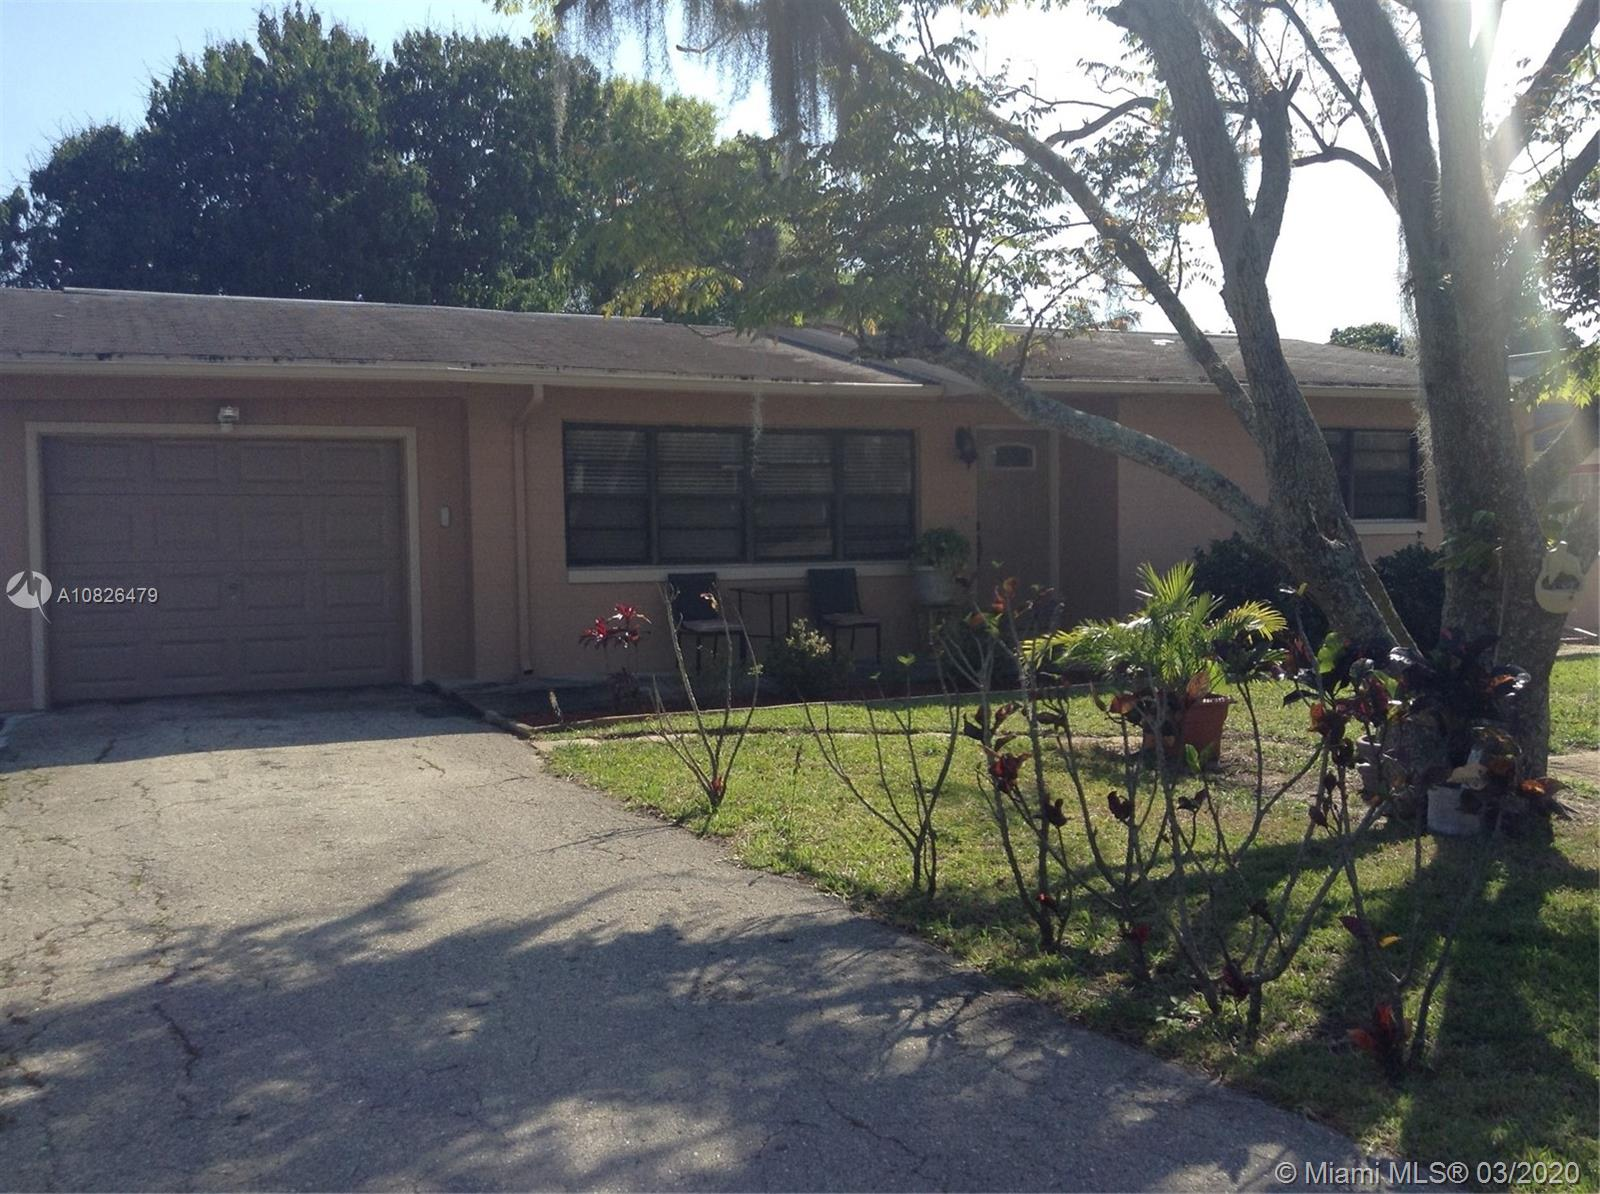 , Other City - In The State Of Florida, FL 33852